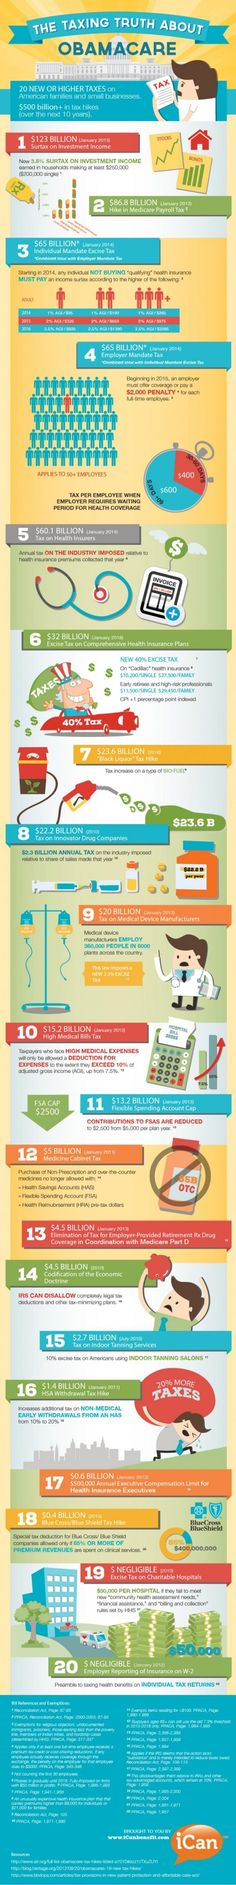 20 Taxes Associated with Obamacare - Infographic   BHM Healthcare Solutions